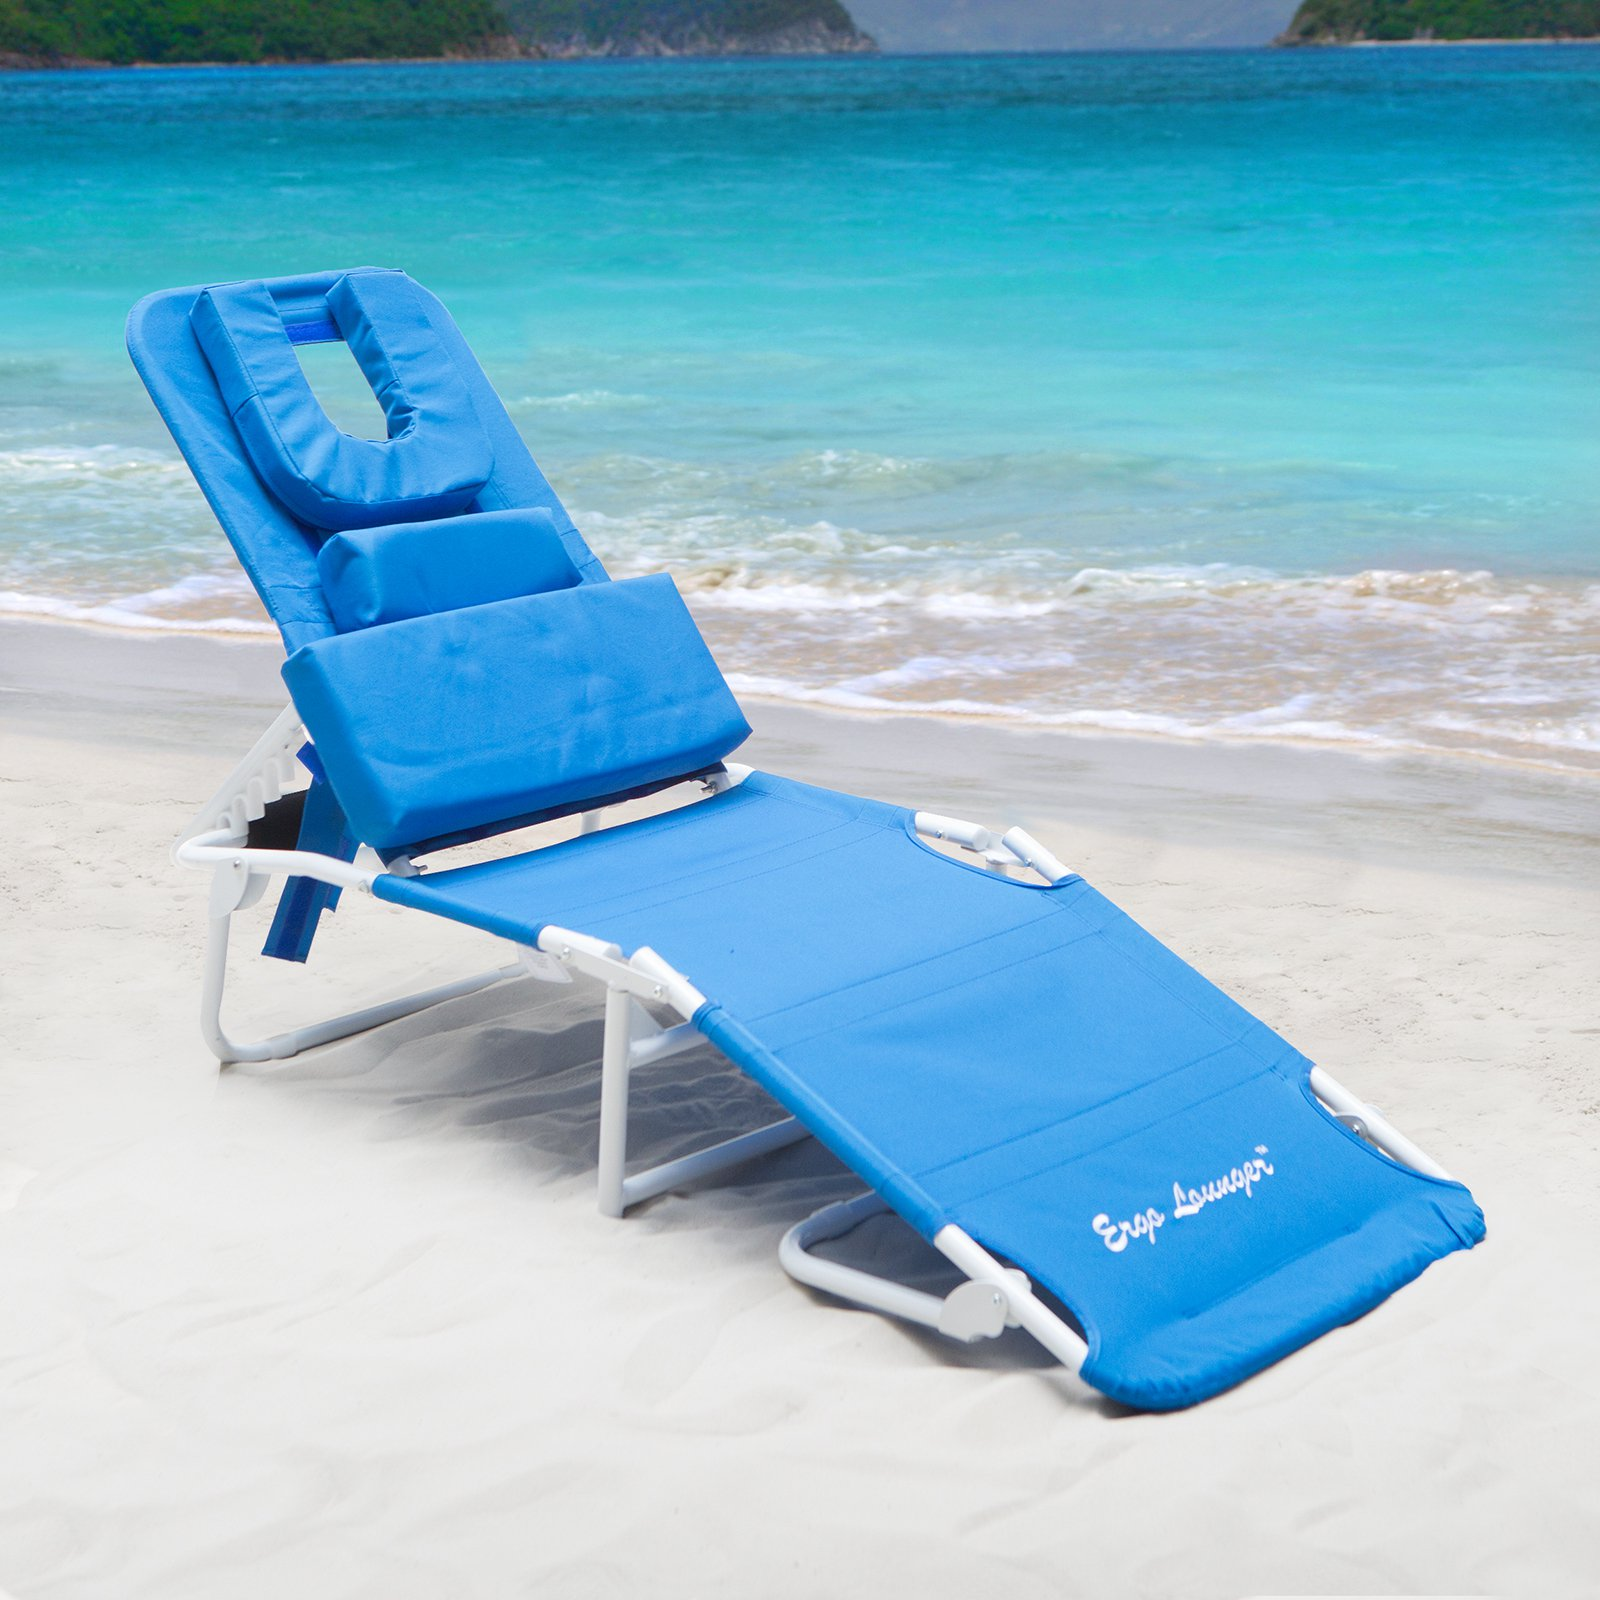 Ergo Lounger RS Beach Chaise Lounge : beach chaise lounge - Sectionals, Sofas & Couches